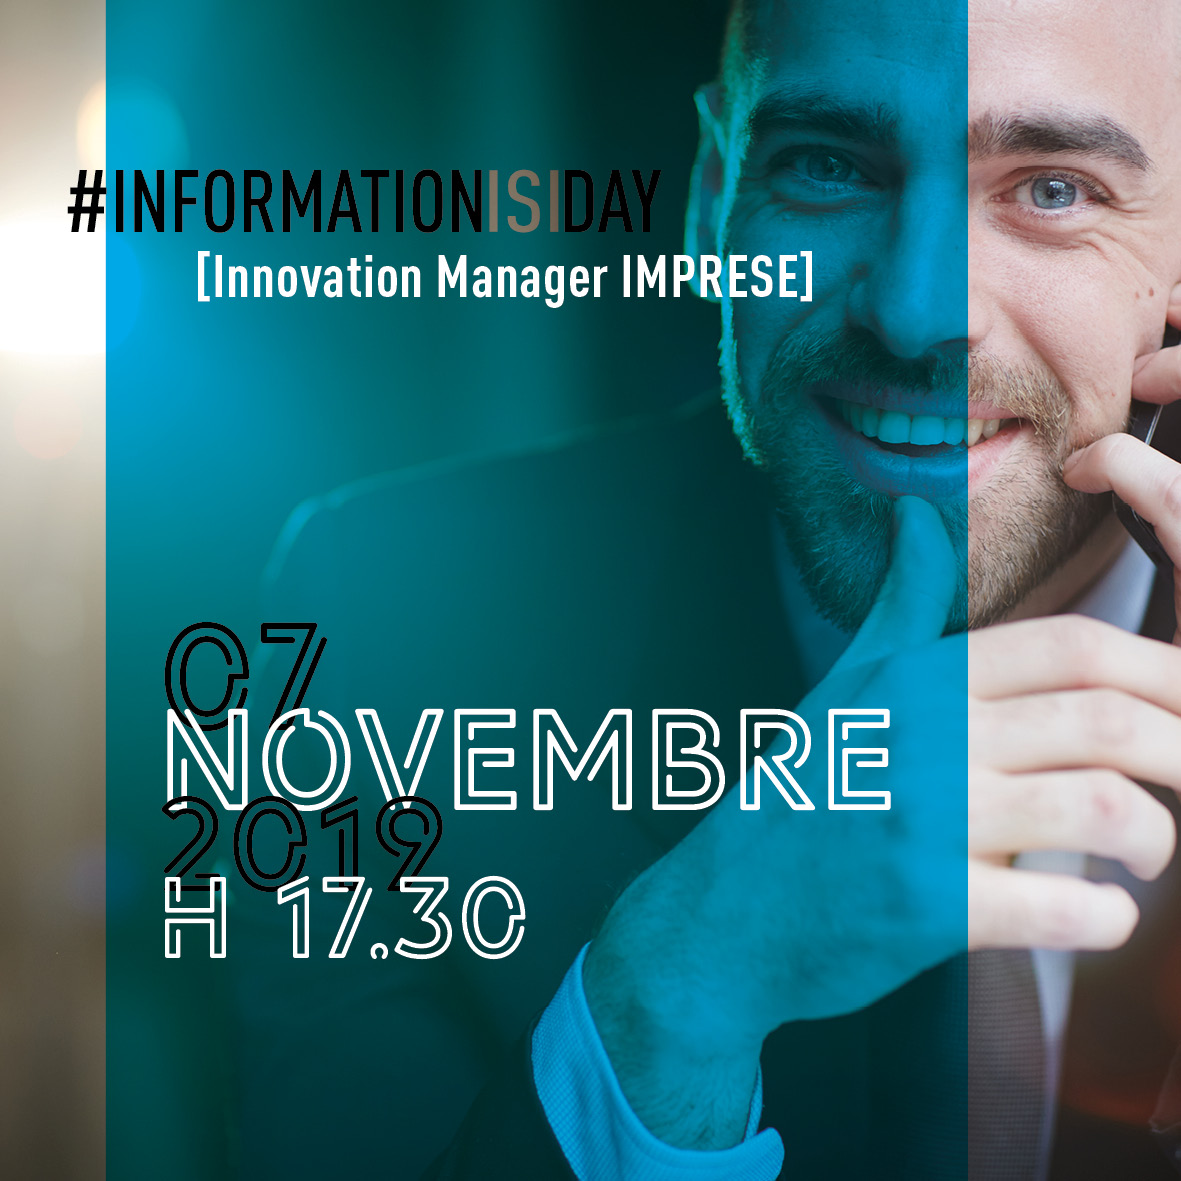 Incontro GRATUITO_Imprese: Innovation Manager - ISIday